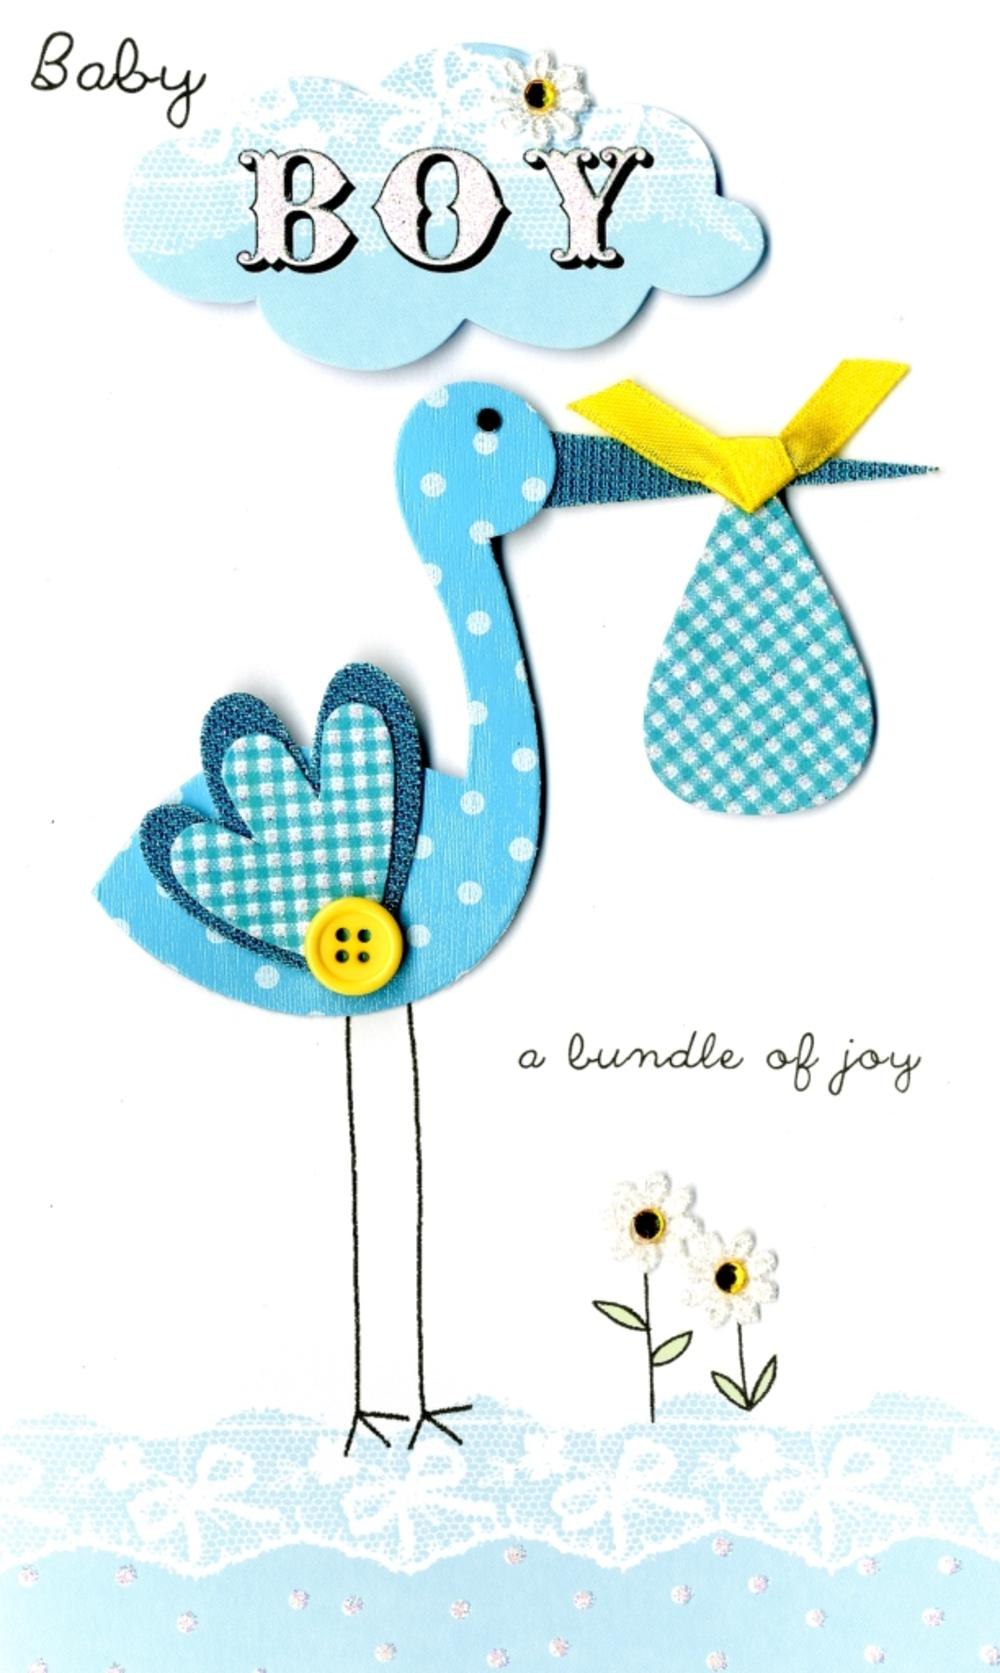 New Baby Boy Stork Luxury Champagne Greeting Card Cards